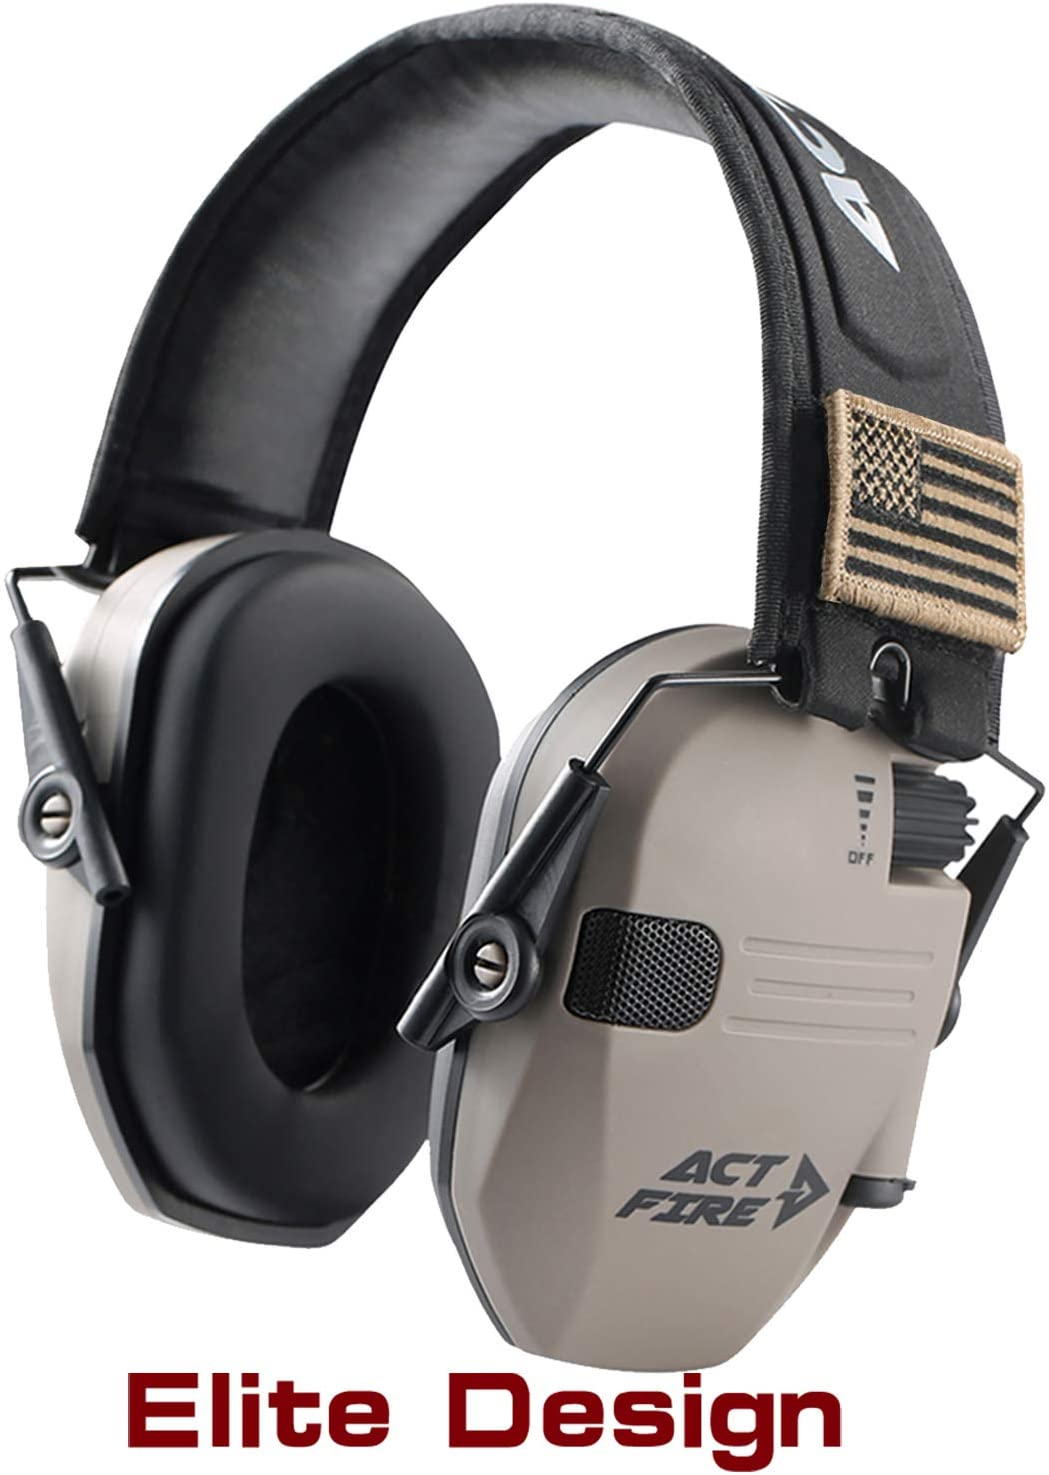 ACT FIRE Shooting Earmuffs, Electronic Ear Protection for Gun Range, Elite Combat Design